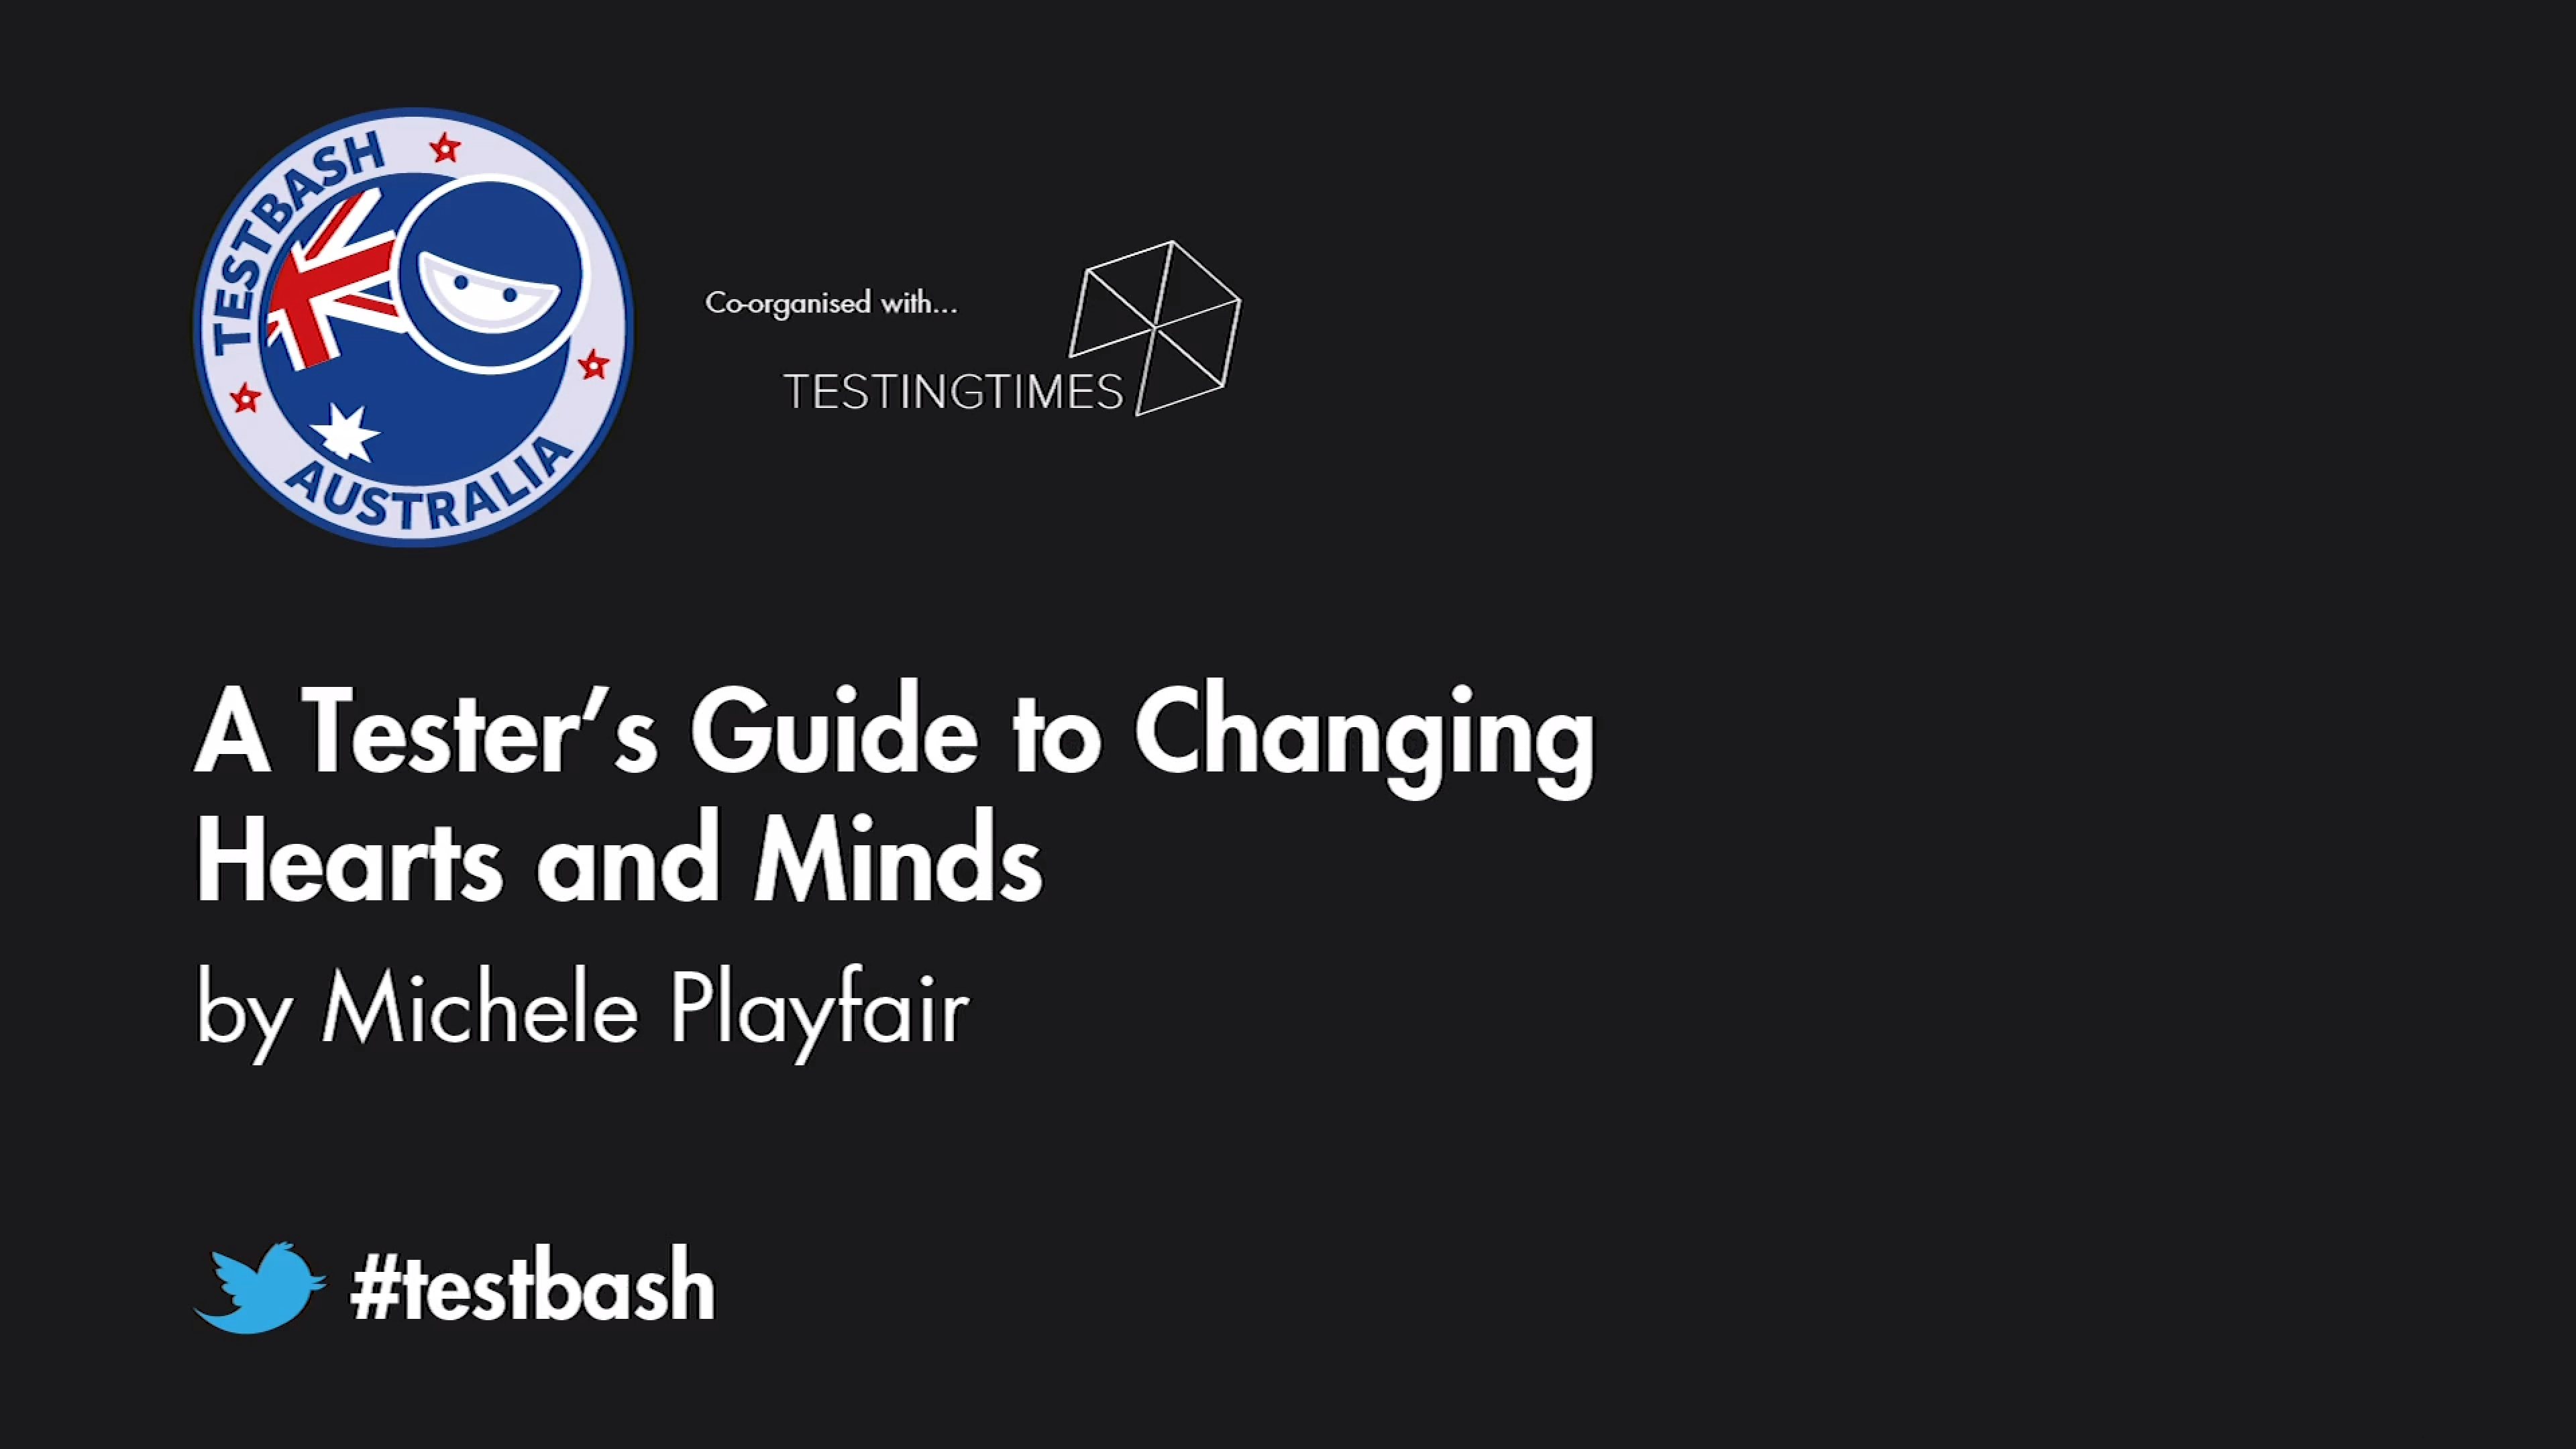 A Tester's Guide to Changing Hearts and Minds - Michele Playfair